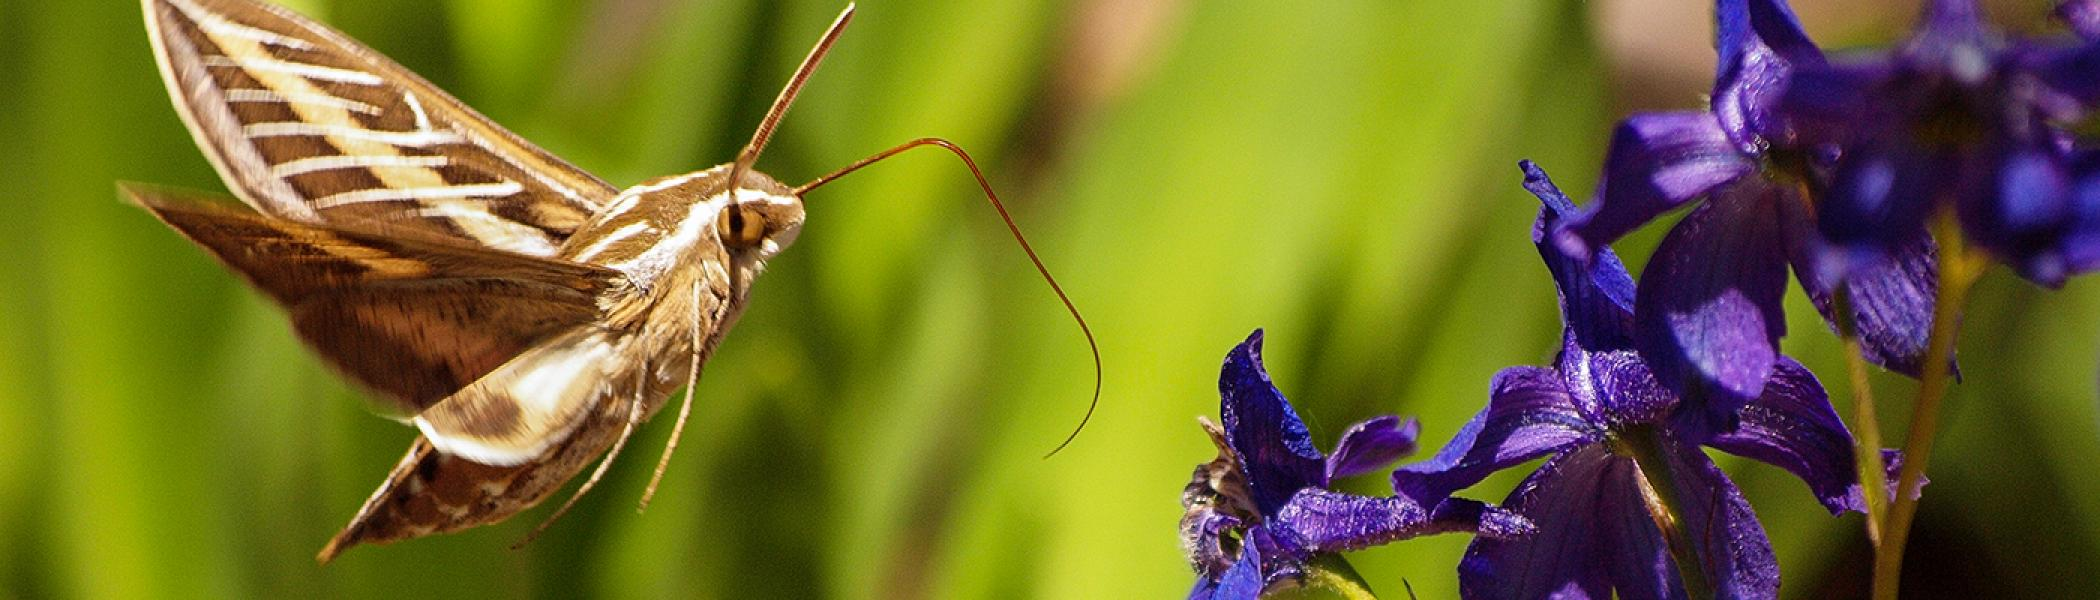 A brown moth flying towards a purple flower